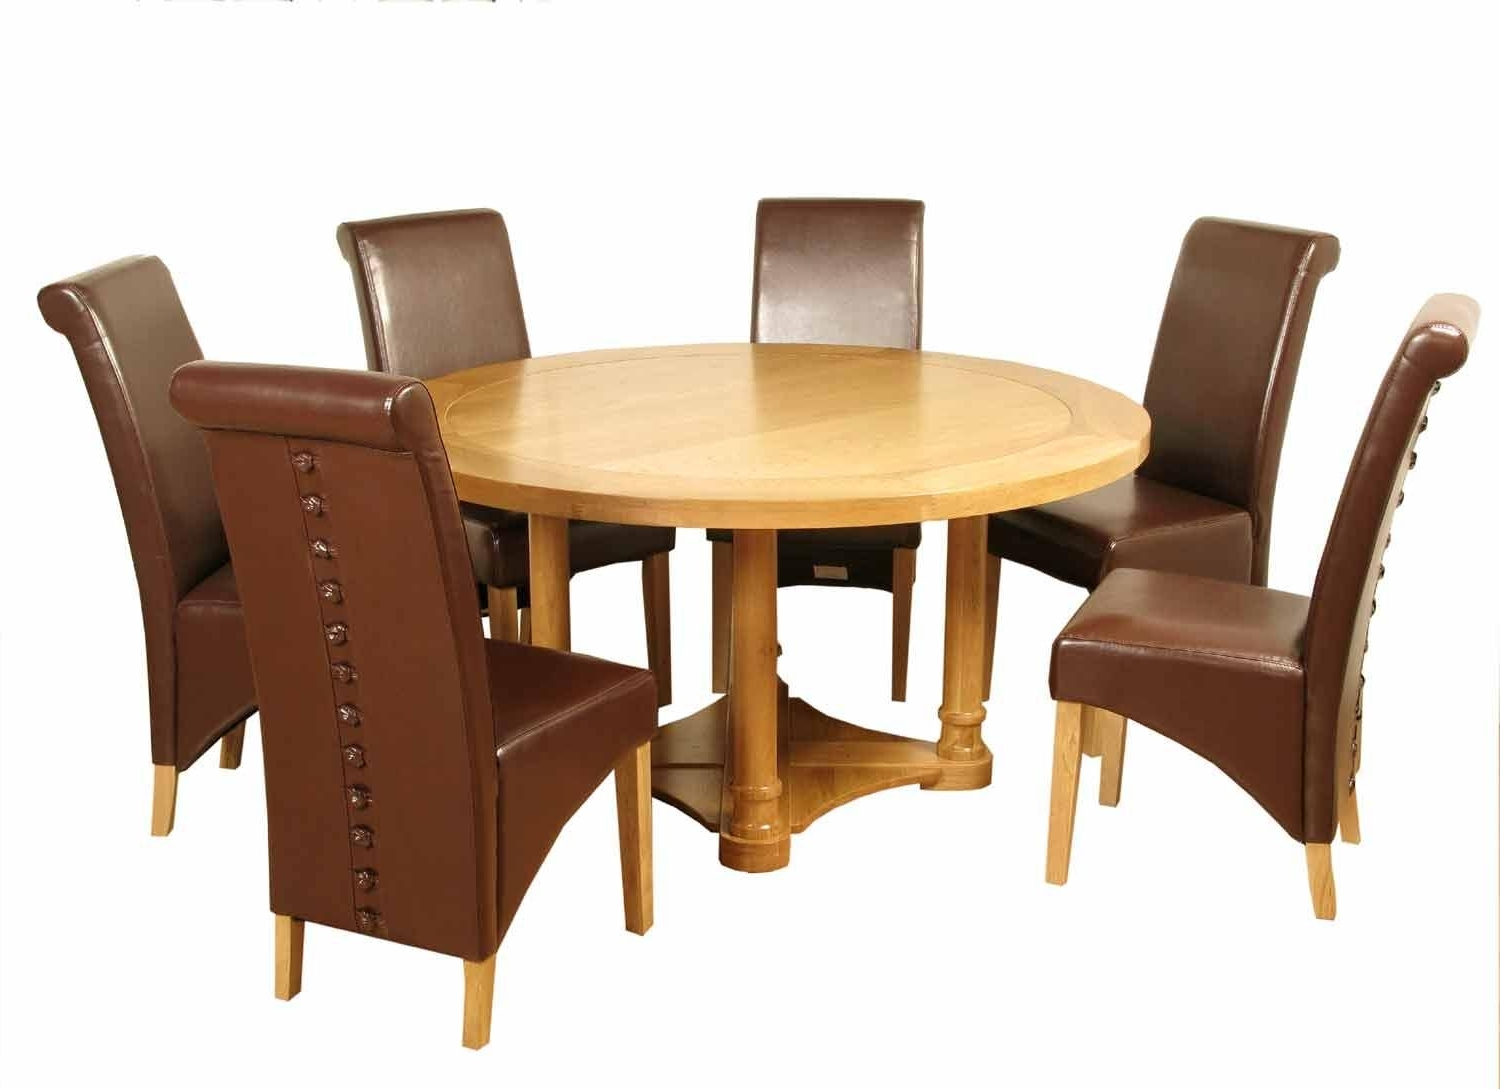 4Ft Rocco Round Solid Oak Dining Set + 4 Chairs – Dublin, Ireland Pertaining To Recent Round Oak Dining Tables And 4 Chairs (Gallery 21 of 25)